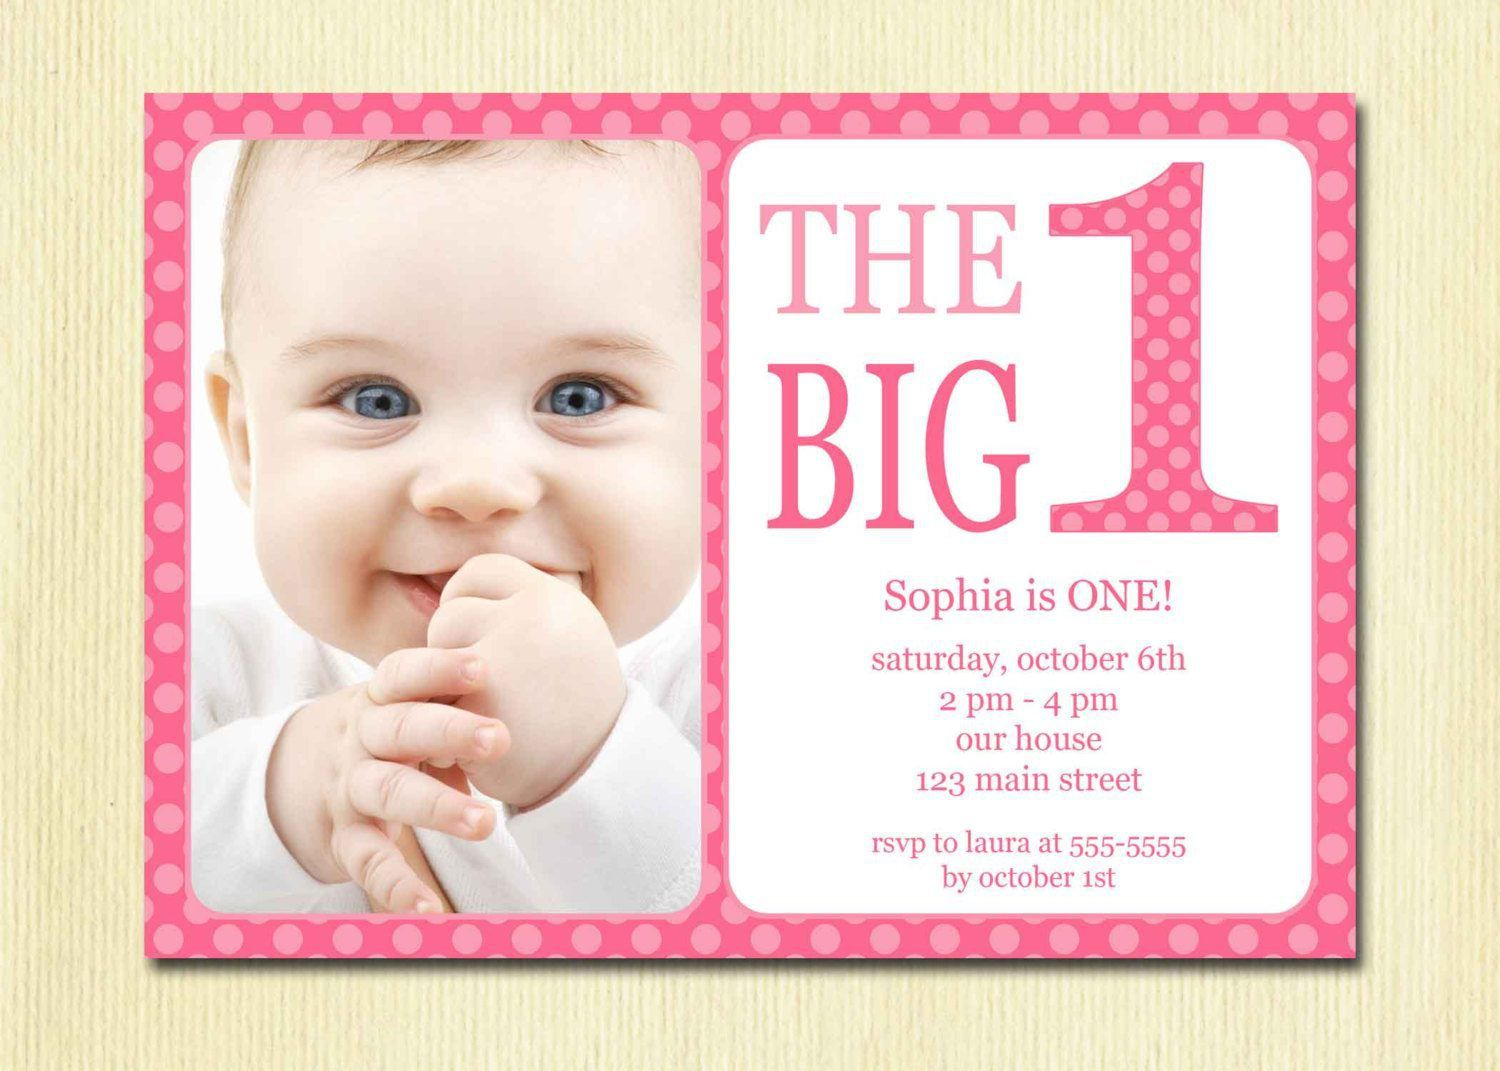 002 Sensational Free 1st Birthday Invitation Template For Word Highest Clarity Full